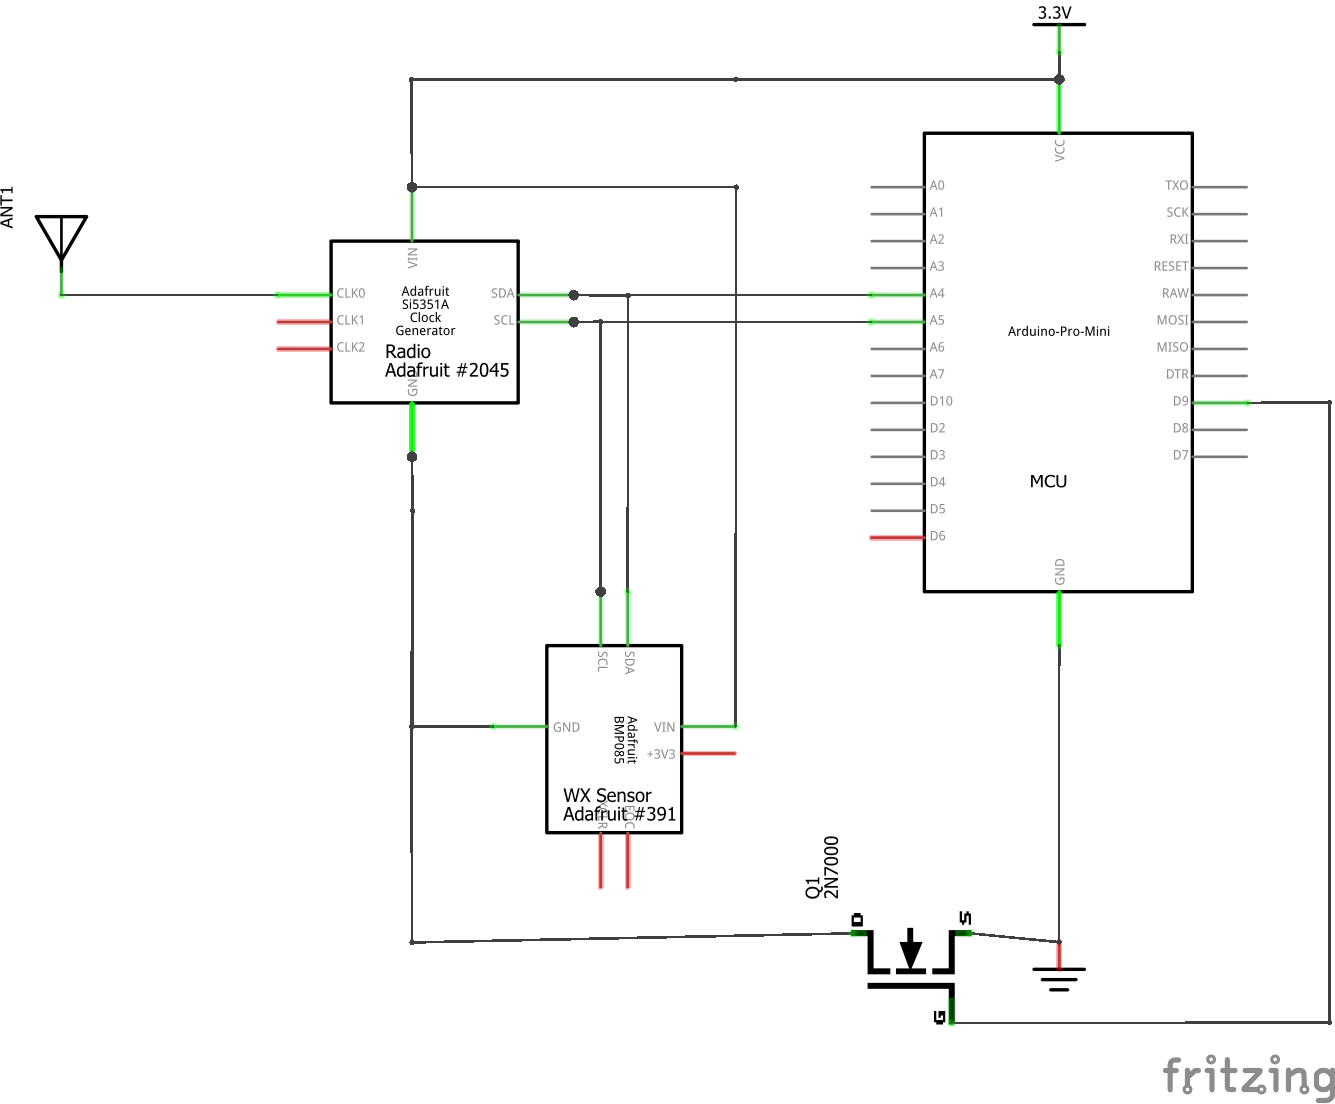 FS#1 Flight Controller schematic